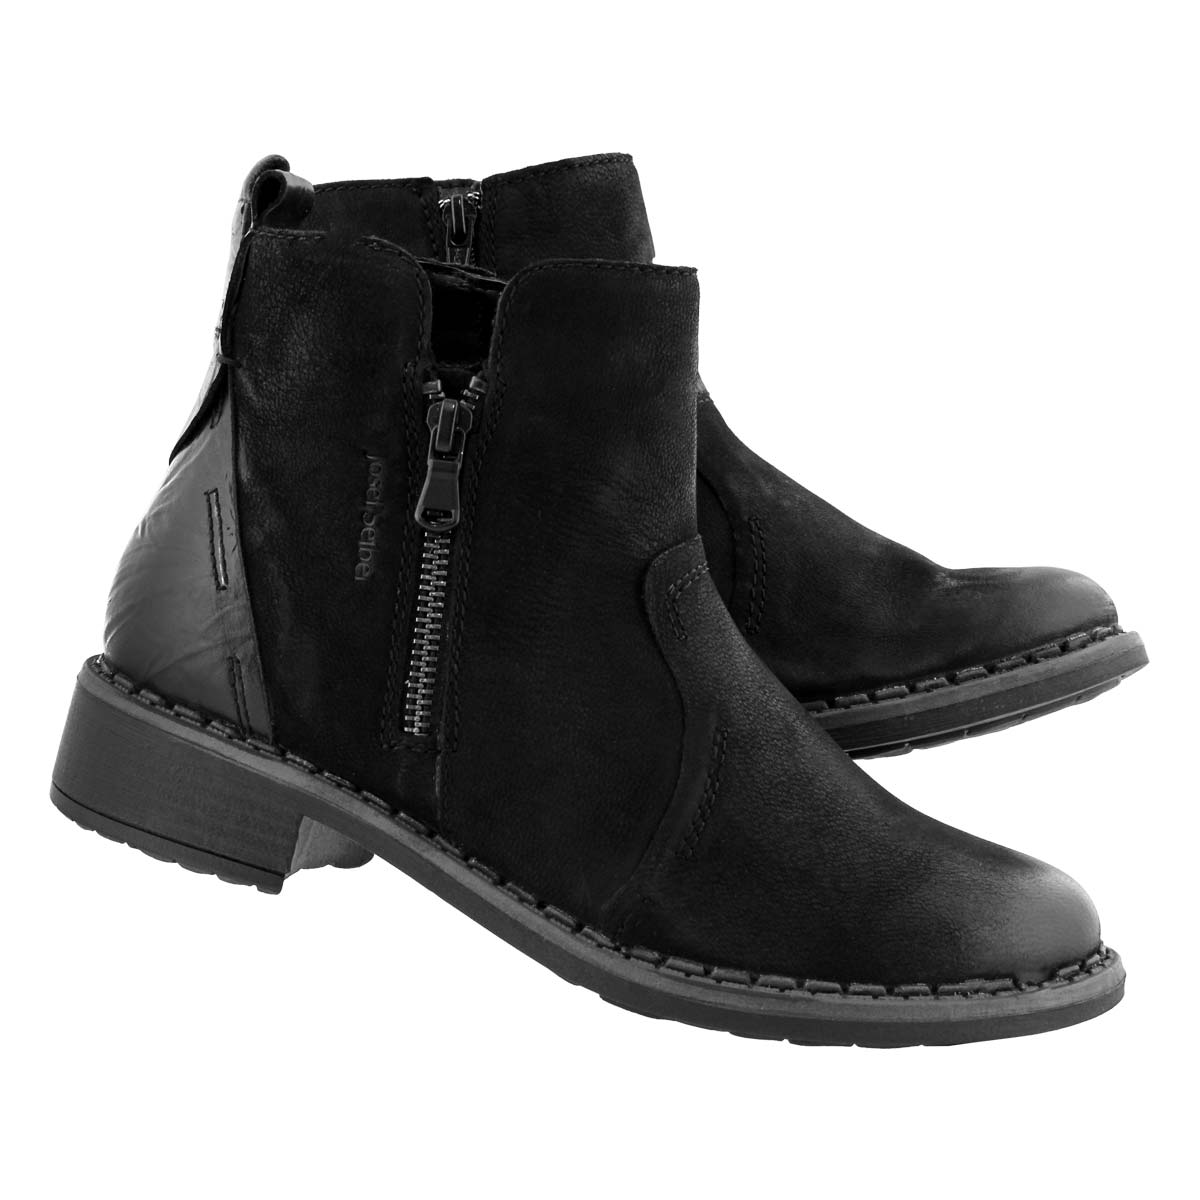 Lds Selena 08 black side zip ankle boot